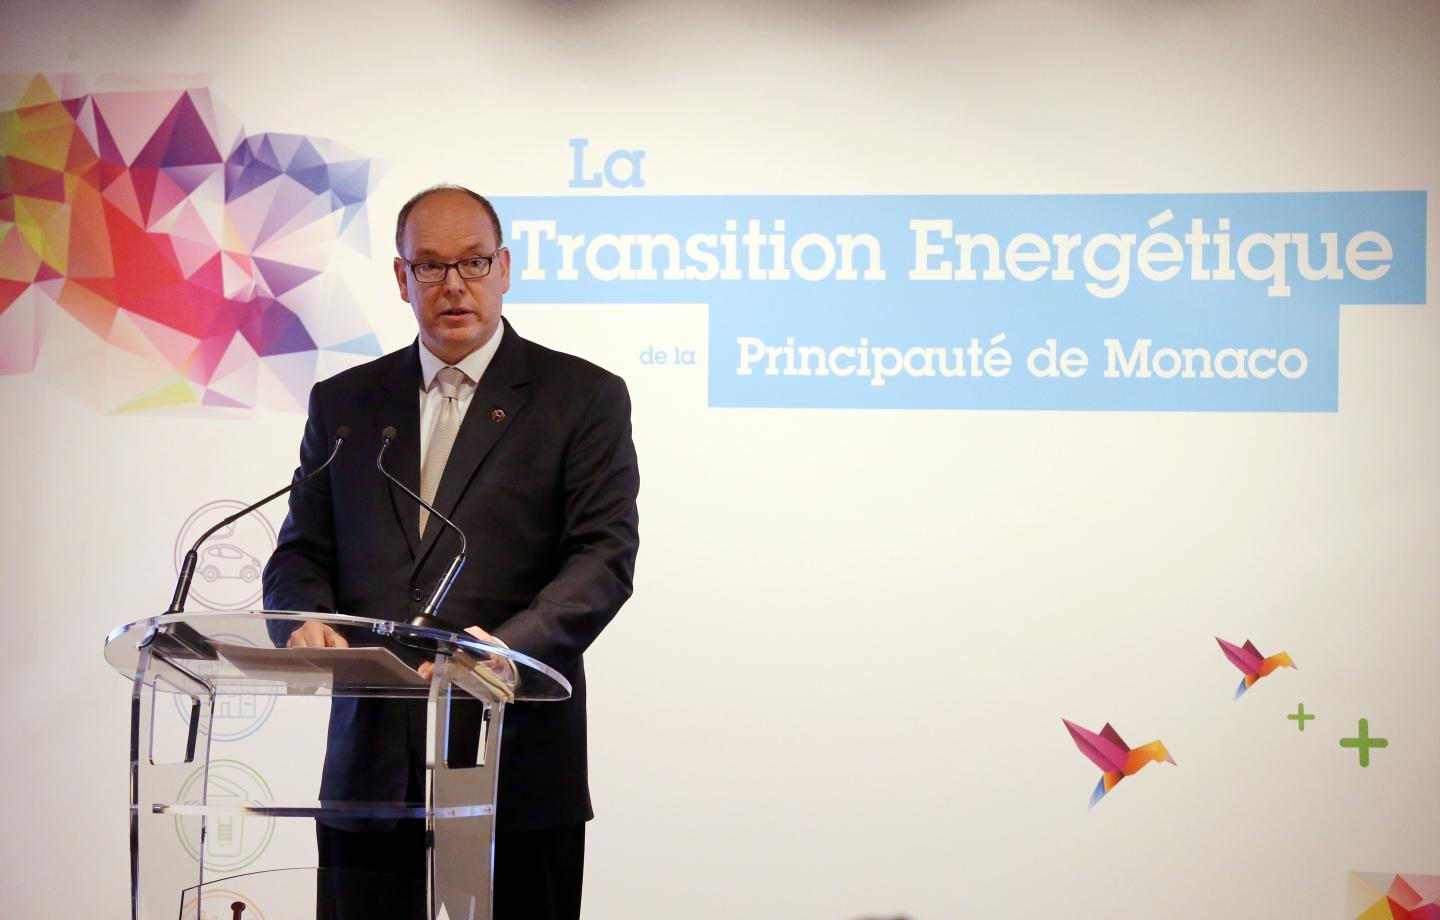 Prince Albert II speaks about energy